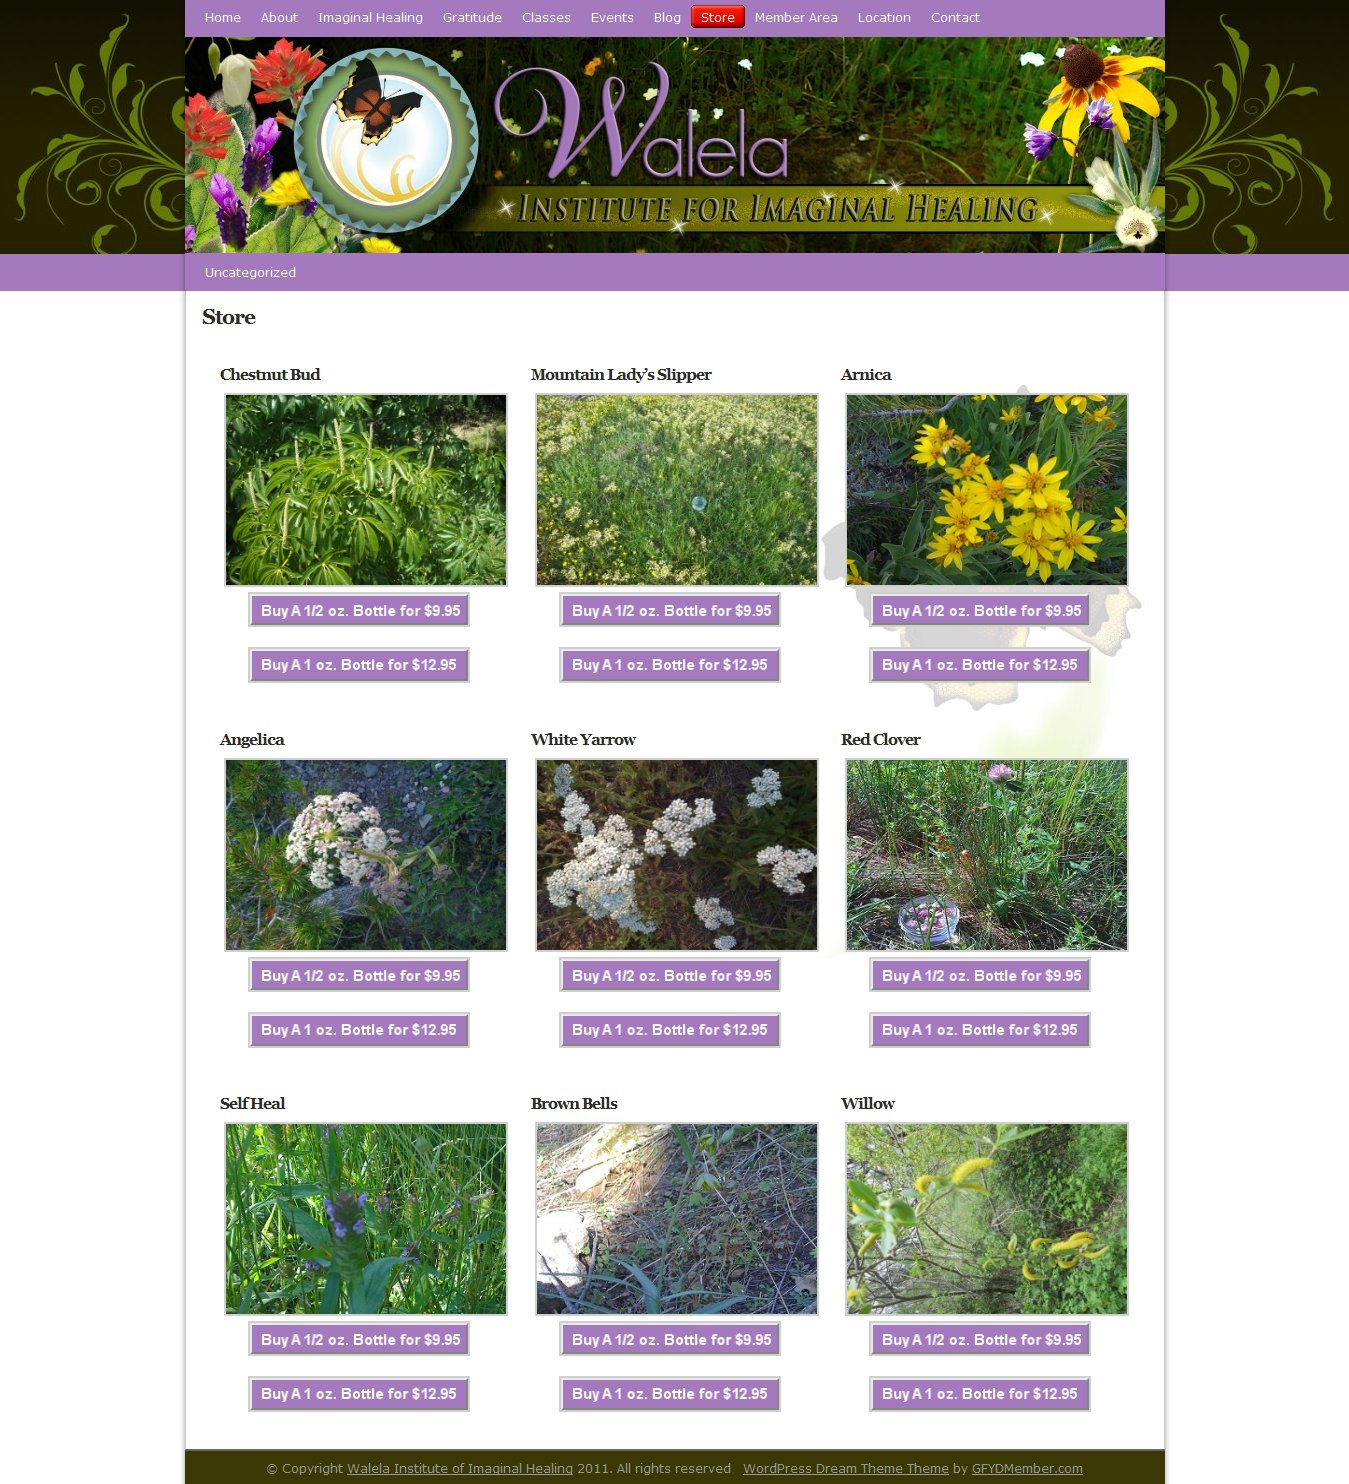 Walela Healing Institute – Website Design